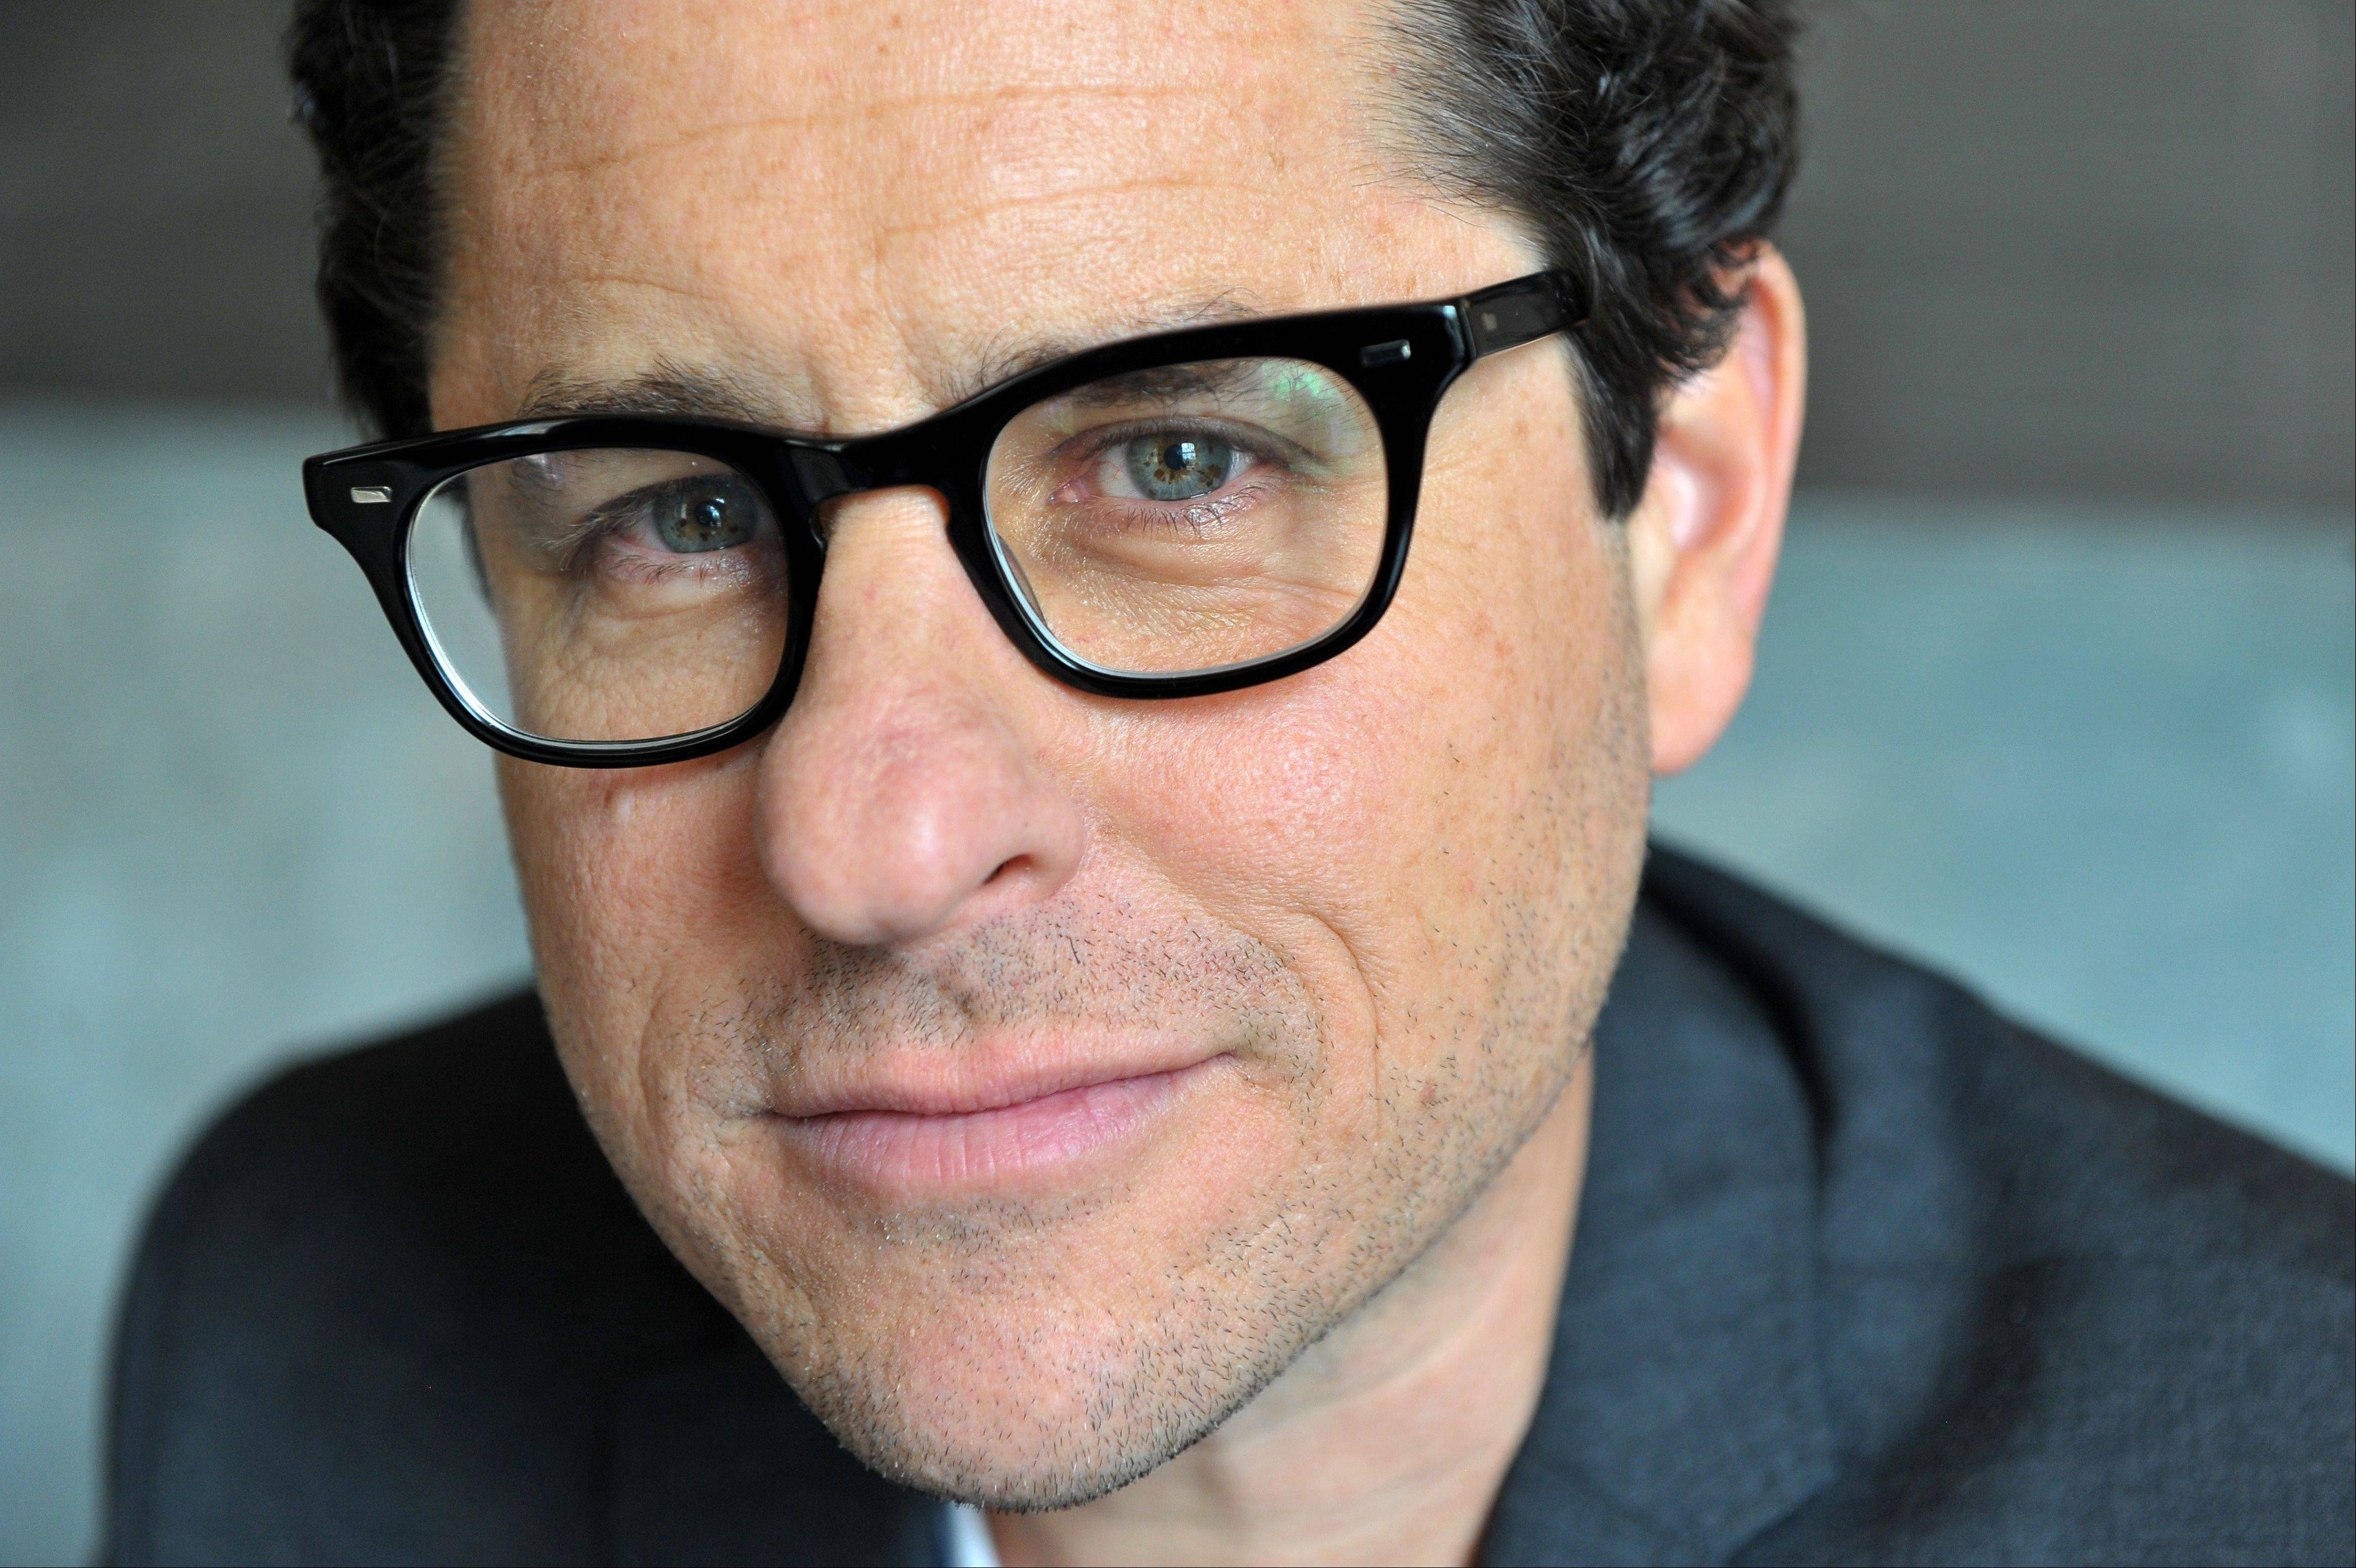 J.J. Abrams, who directed the latest release of the Star Trek film franchise �Into Darkness,� is gearing up for the challenge of overseeing the next installment of �Star Wars.�